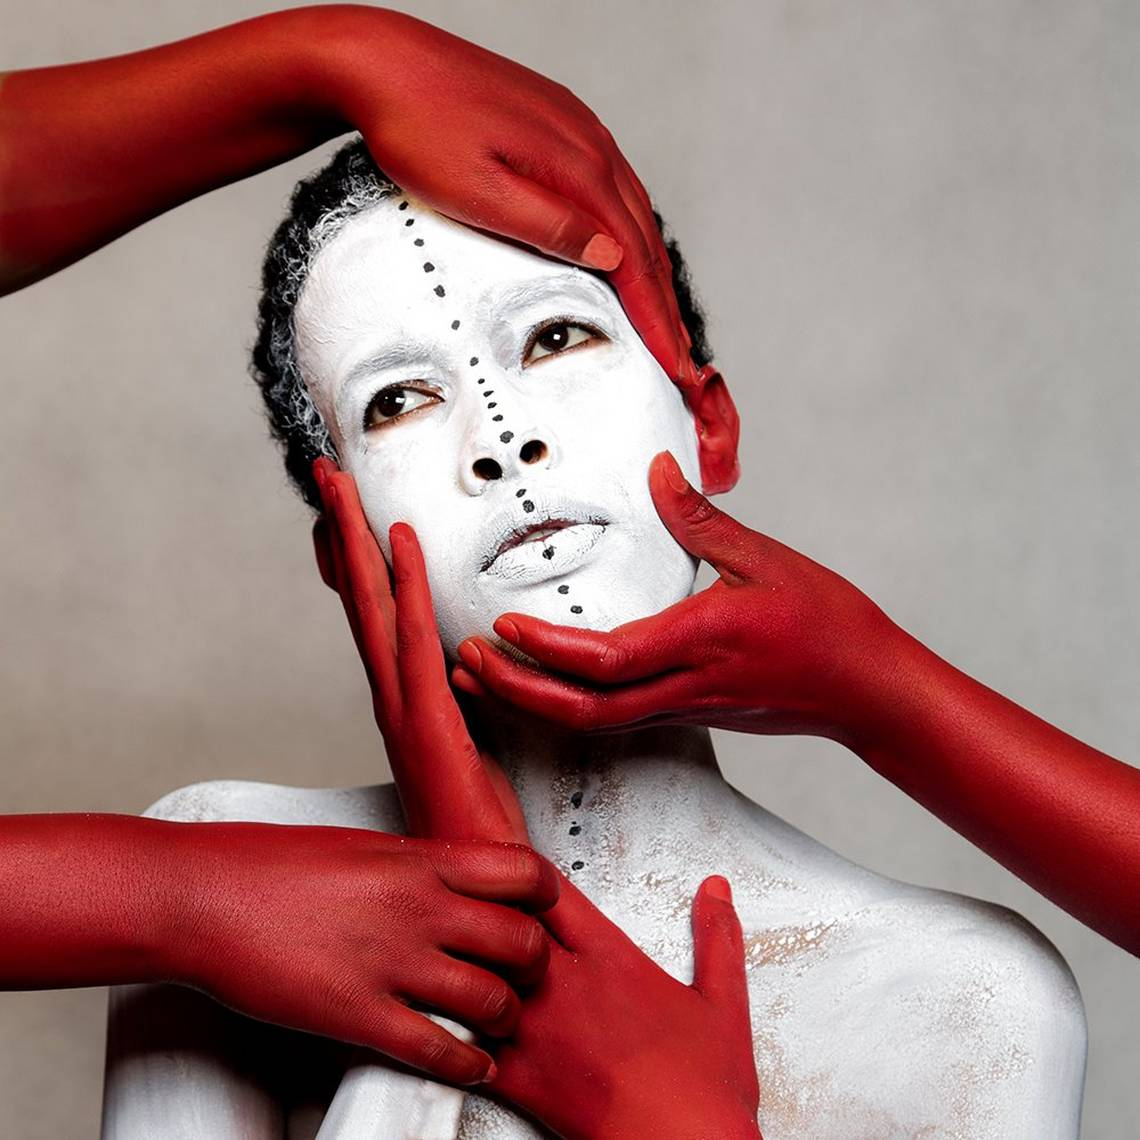 A head-and-shoulders shot of a woman in white body paint, with red painted hands holding her face. Taken by Aïda Muluneh on a Canon EOS 5D Mark III.